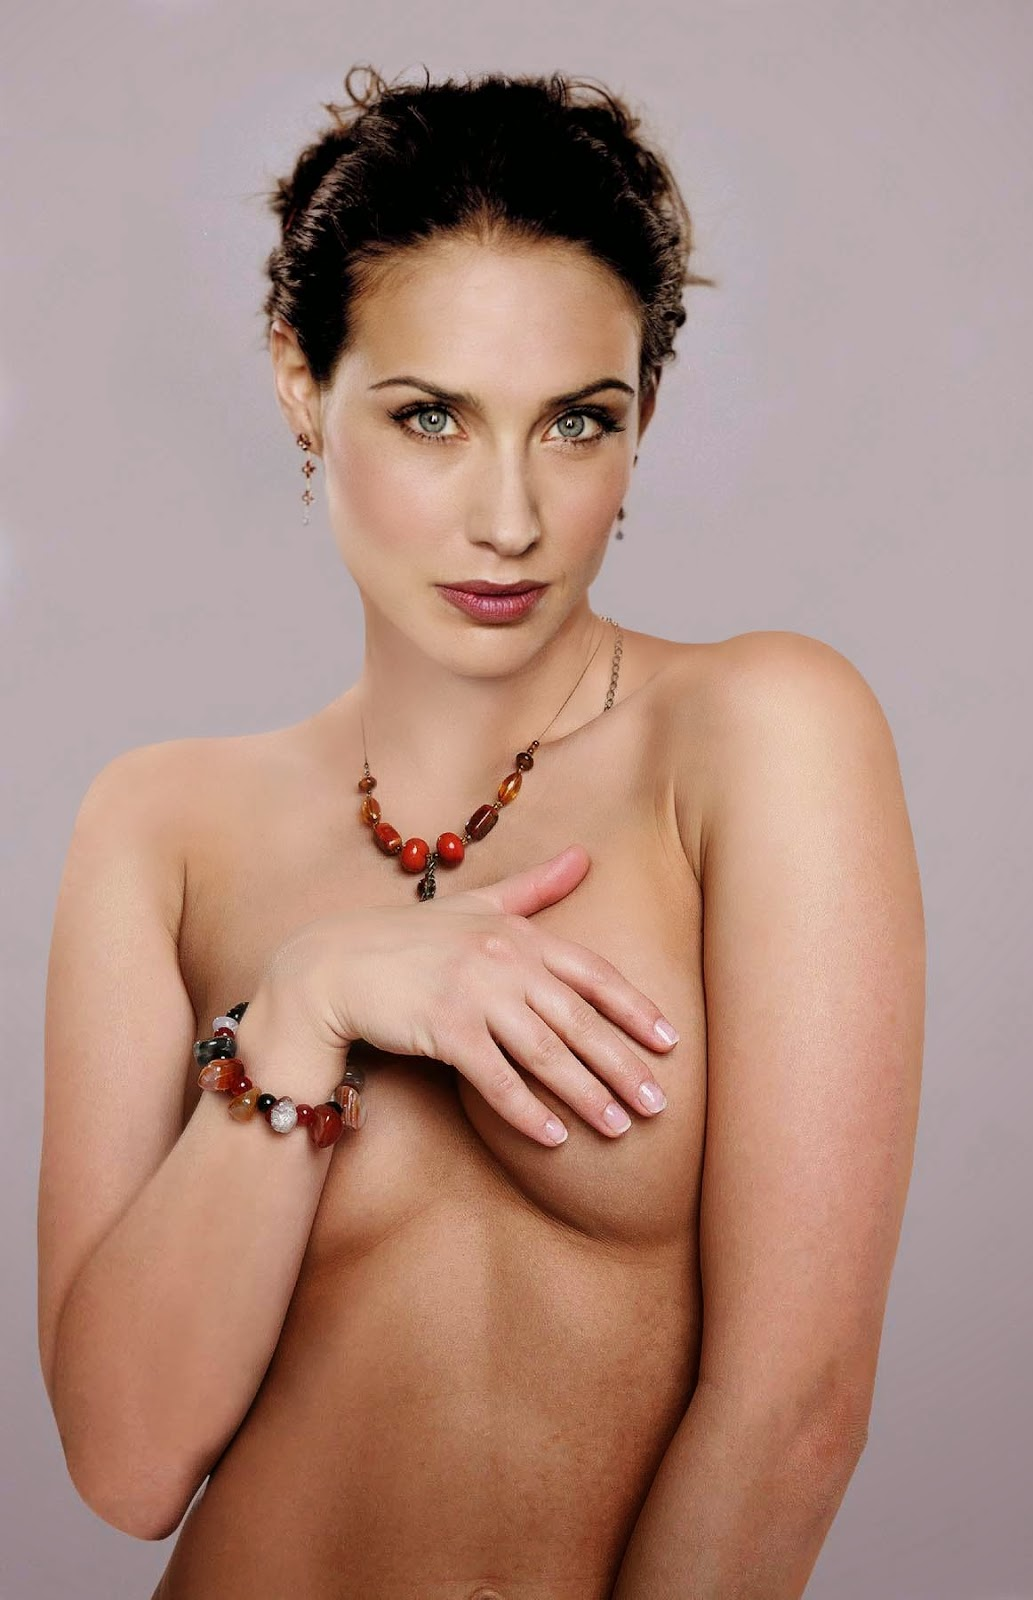 claire forlani hot naked